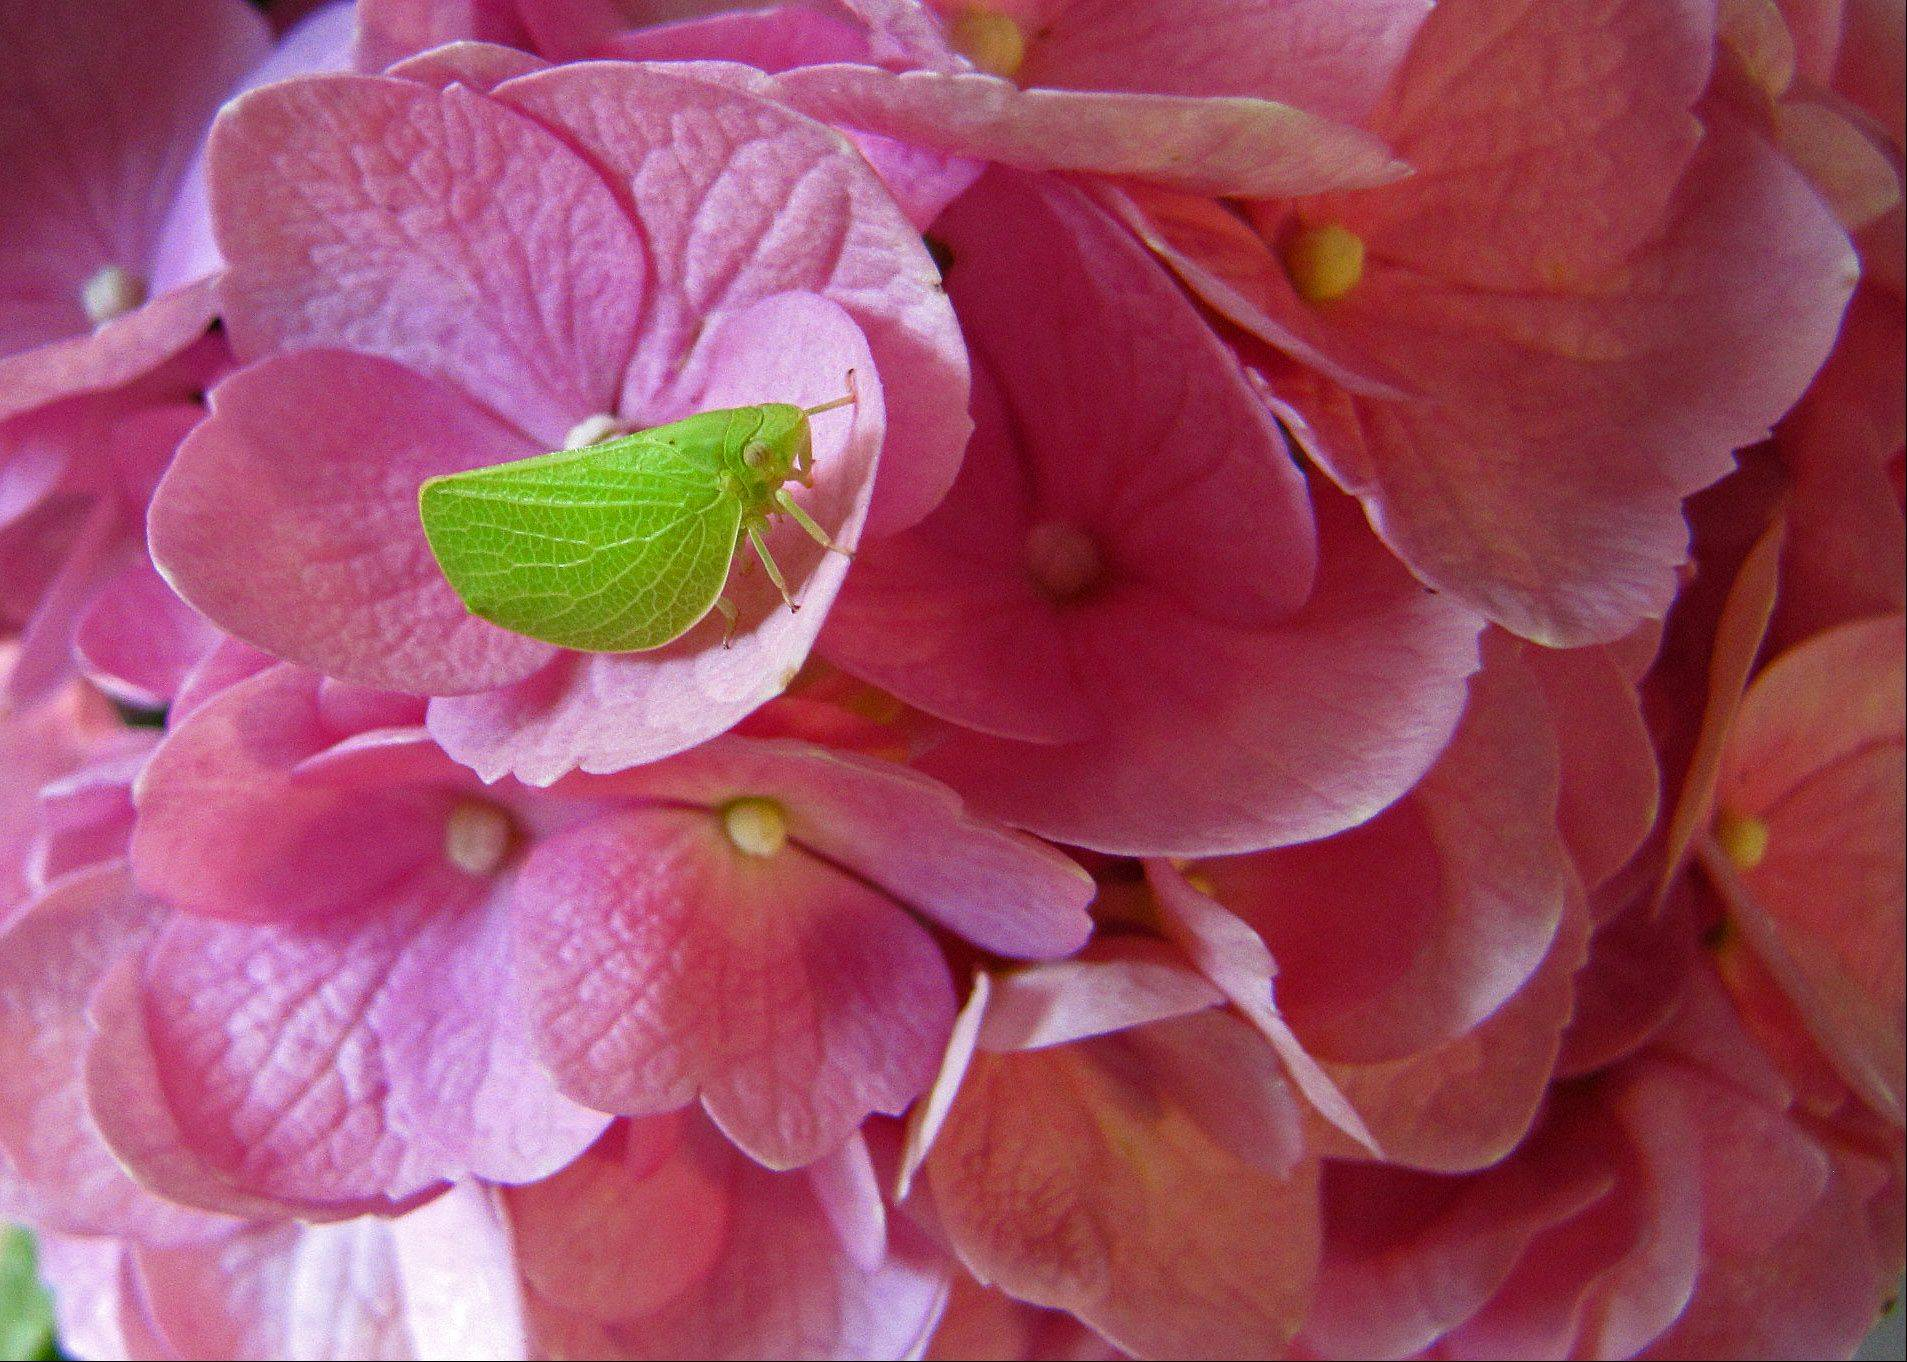 Although this bug is tiny, his leaflike shape stands out against the vivid pink of the hydrangea petals.